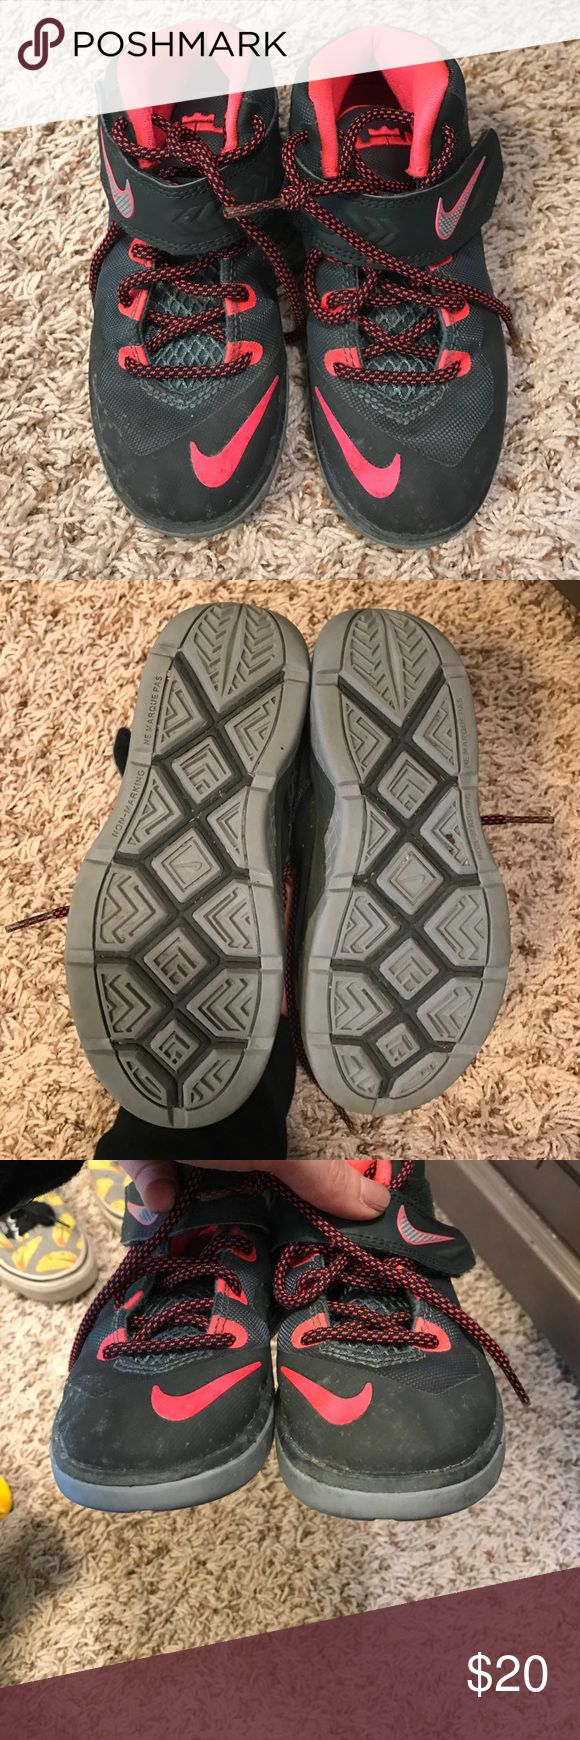 Boys Nike shoes Pink and dark green boys Nikes in good condition used but still have a lot of life. No holes and soles are good. A little wipe an they are like new Nike Shoes Sneakers